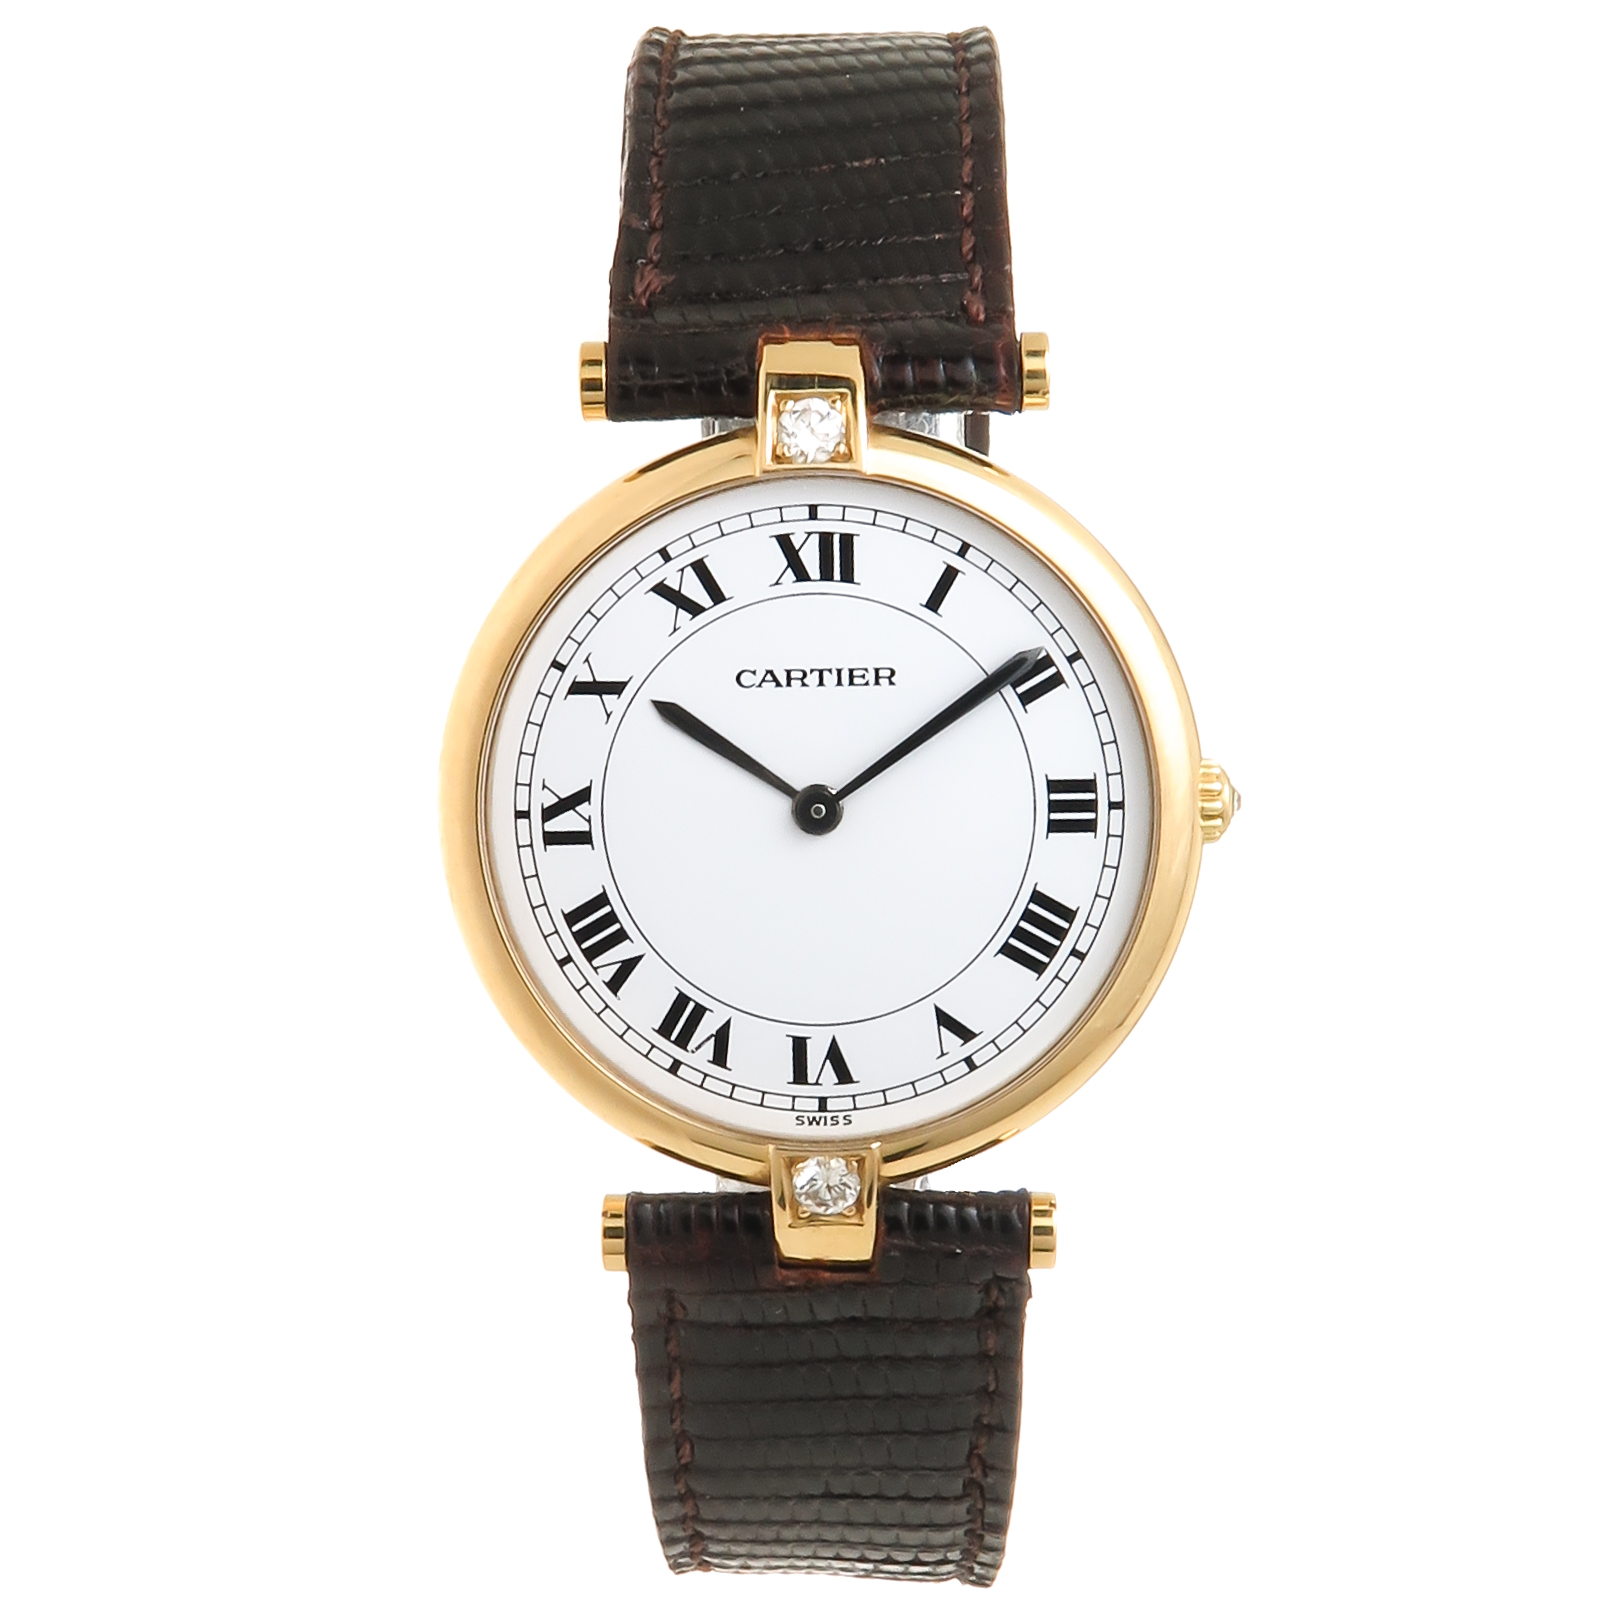 Cartier Yellow Gold Diamond Large Vendome Collection Quartz     Cartier Yellow Gold Diamond Large Vendome Collection Quartz Wristwatch